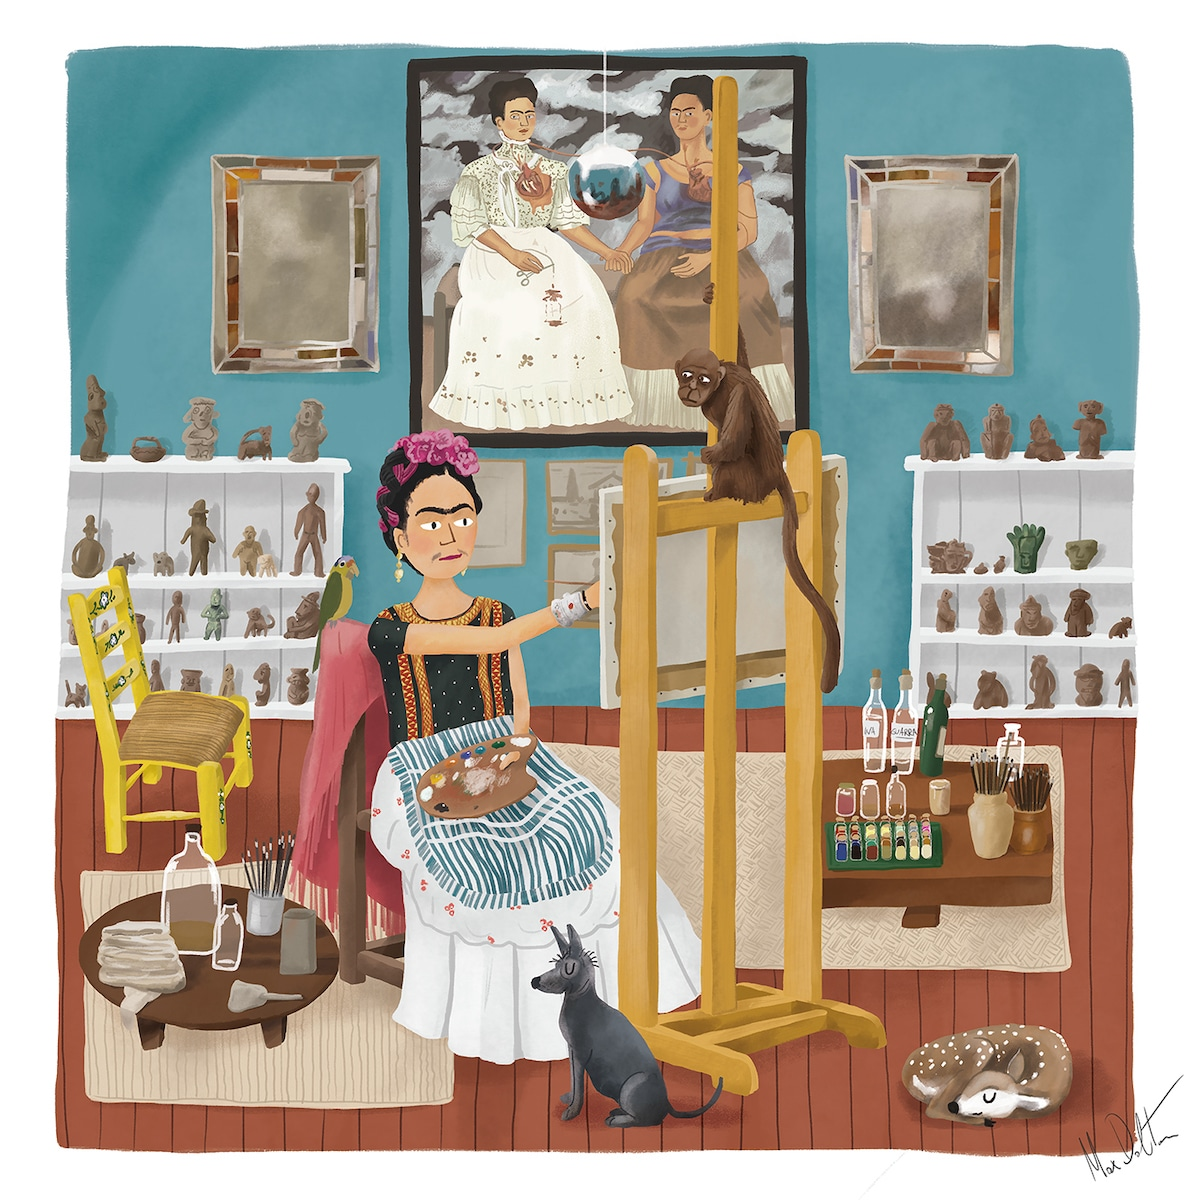 Painting of Frida Kahlo in Studio